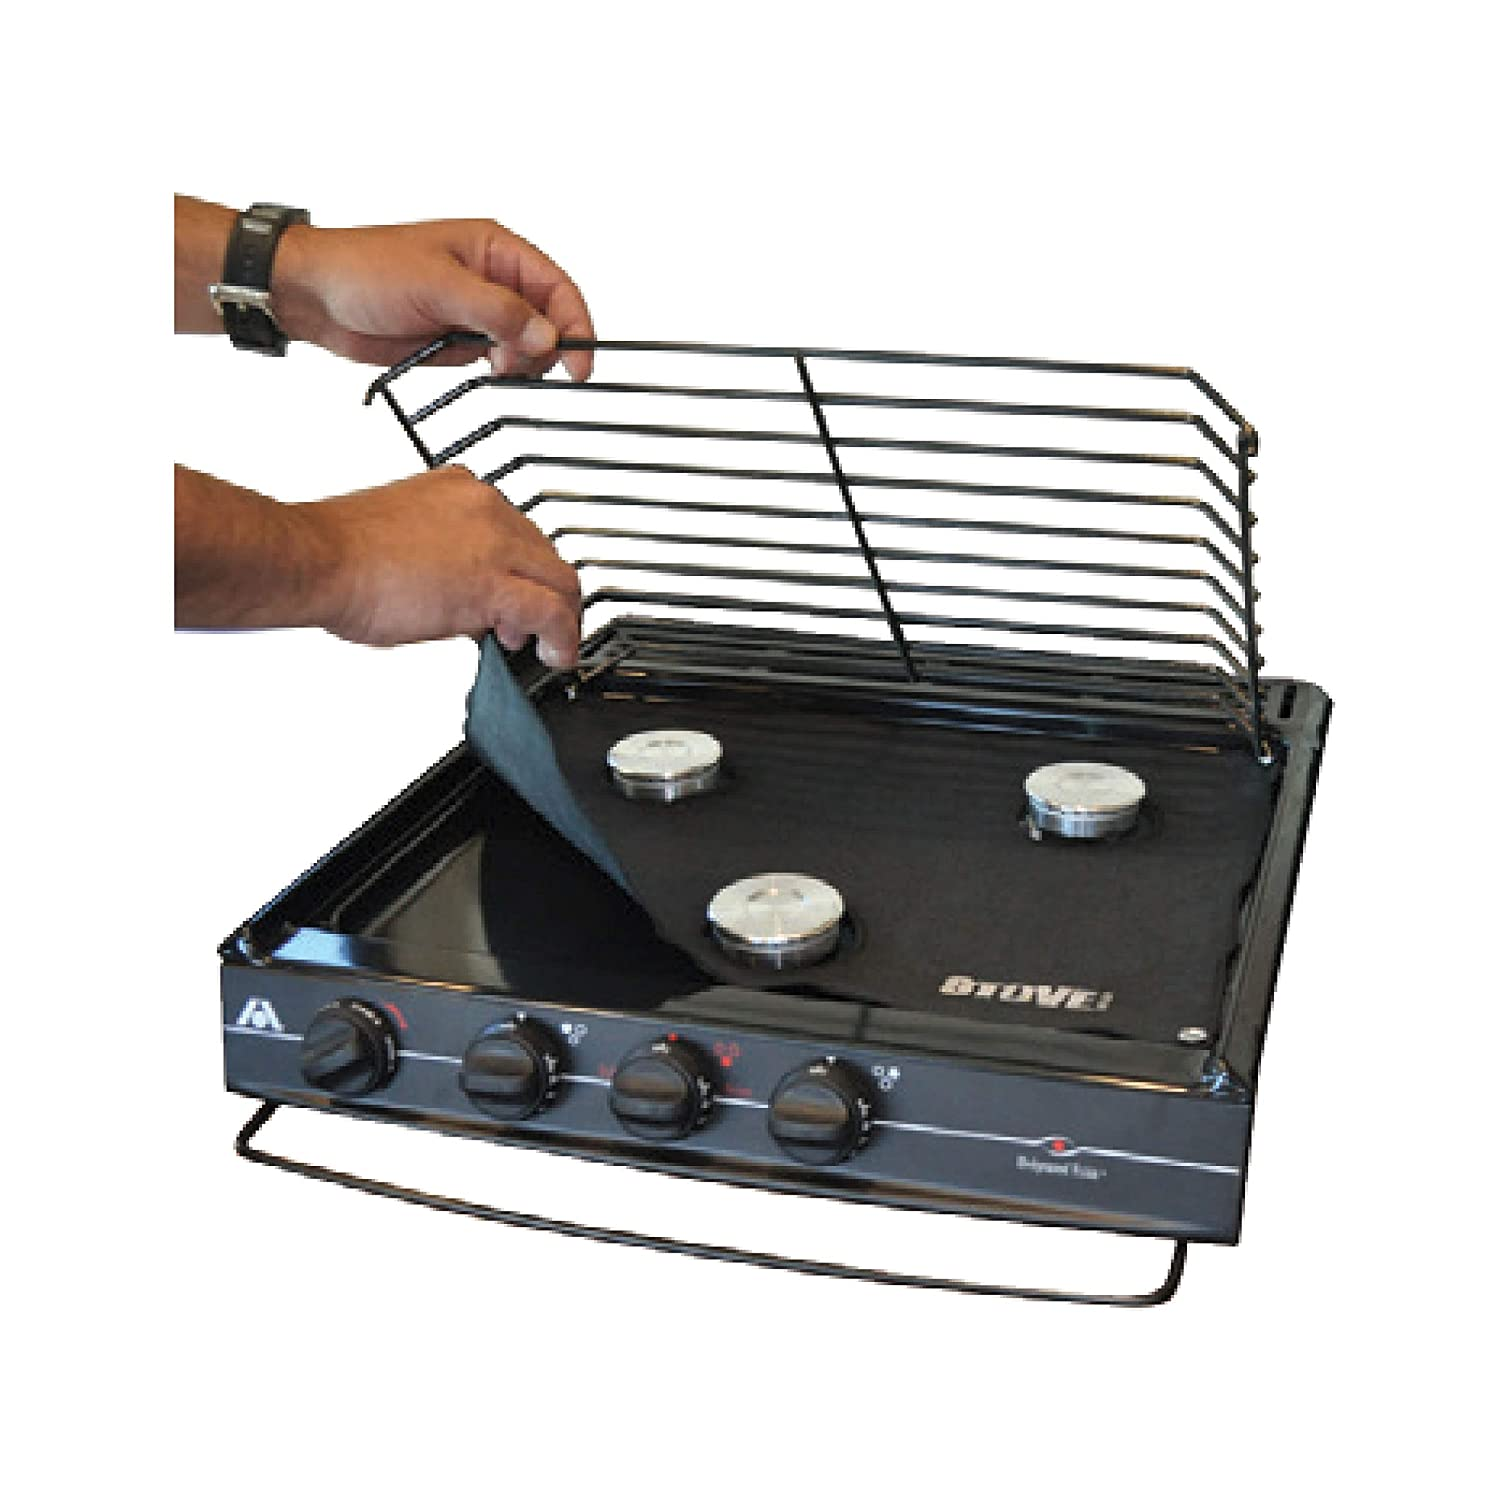 Atwood Mobile Products 52933 Stove Wrap for Atwood 3 Burner